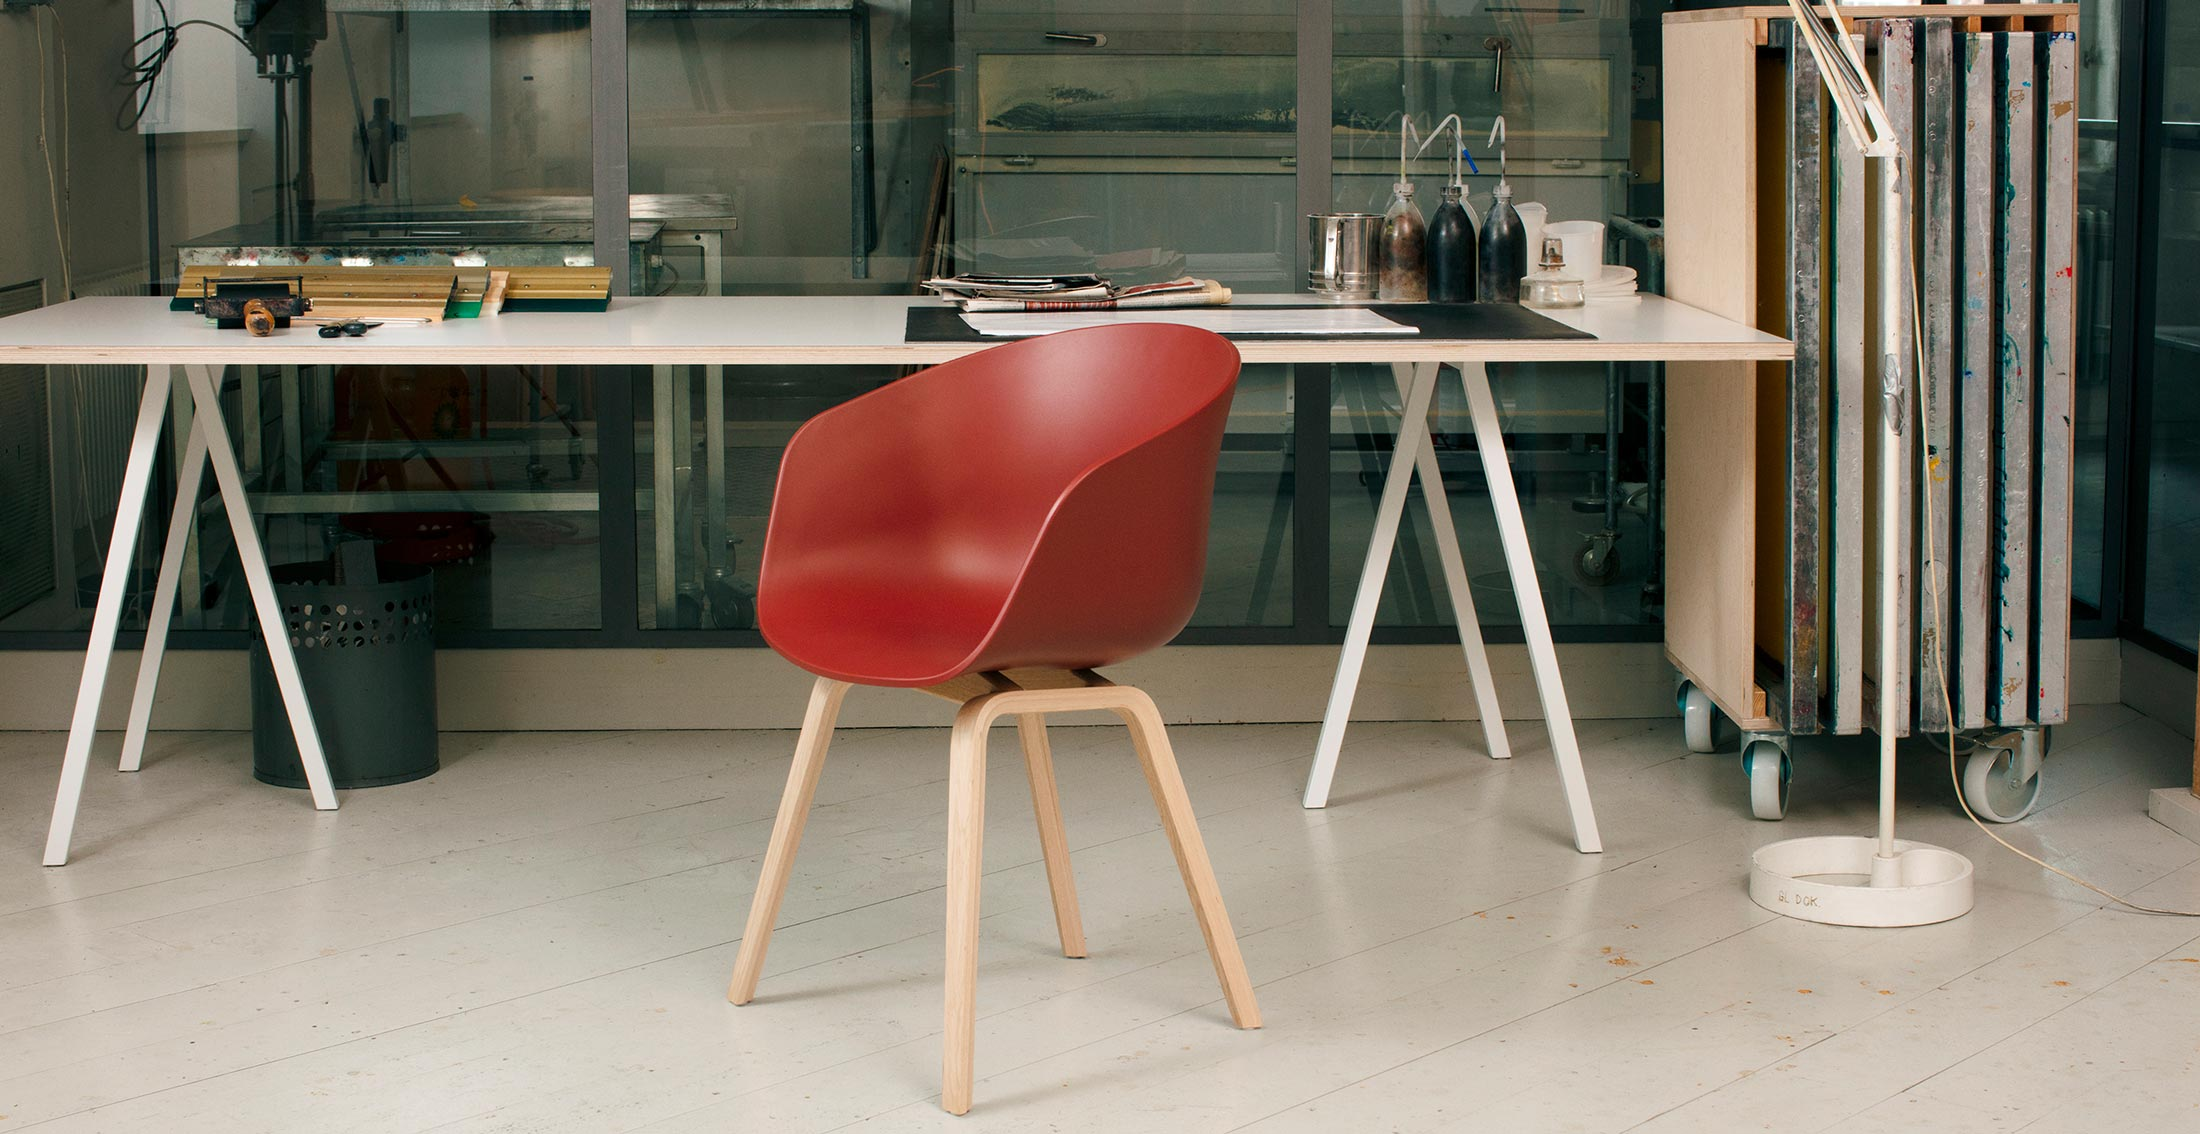 aac-22-warm-red-shell-matt-lacquer-oak-base-loop-stand-table-white-web.jpg